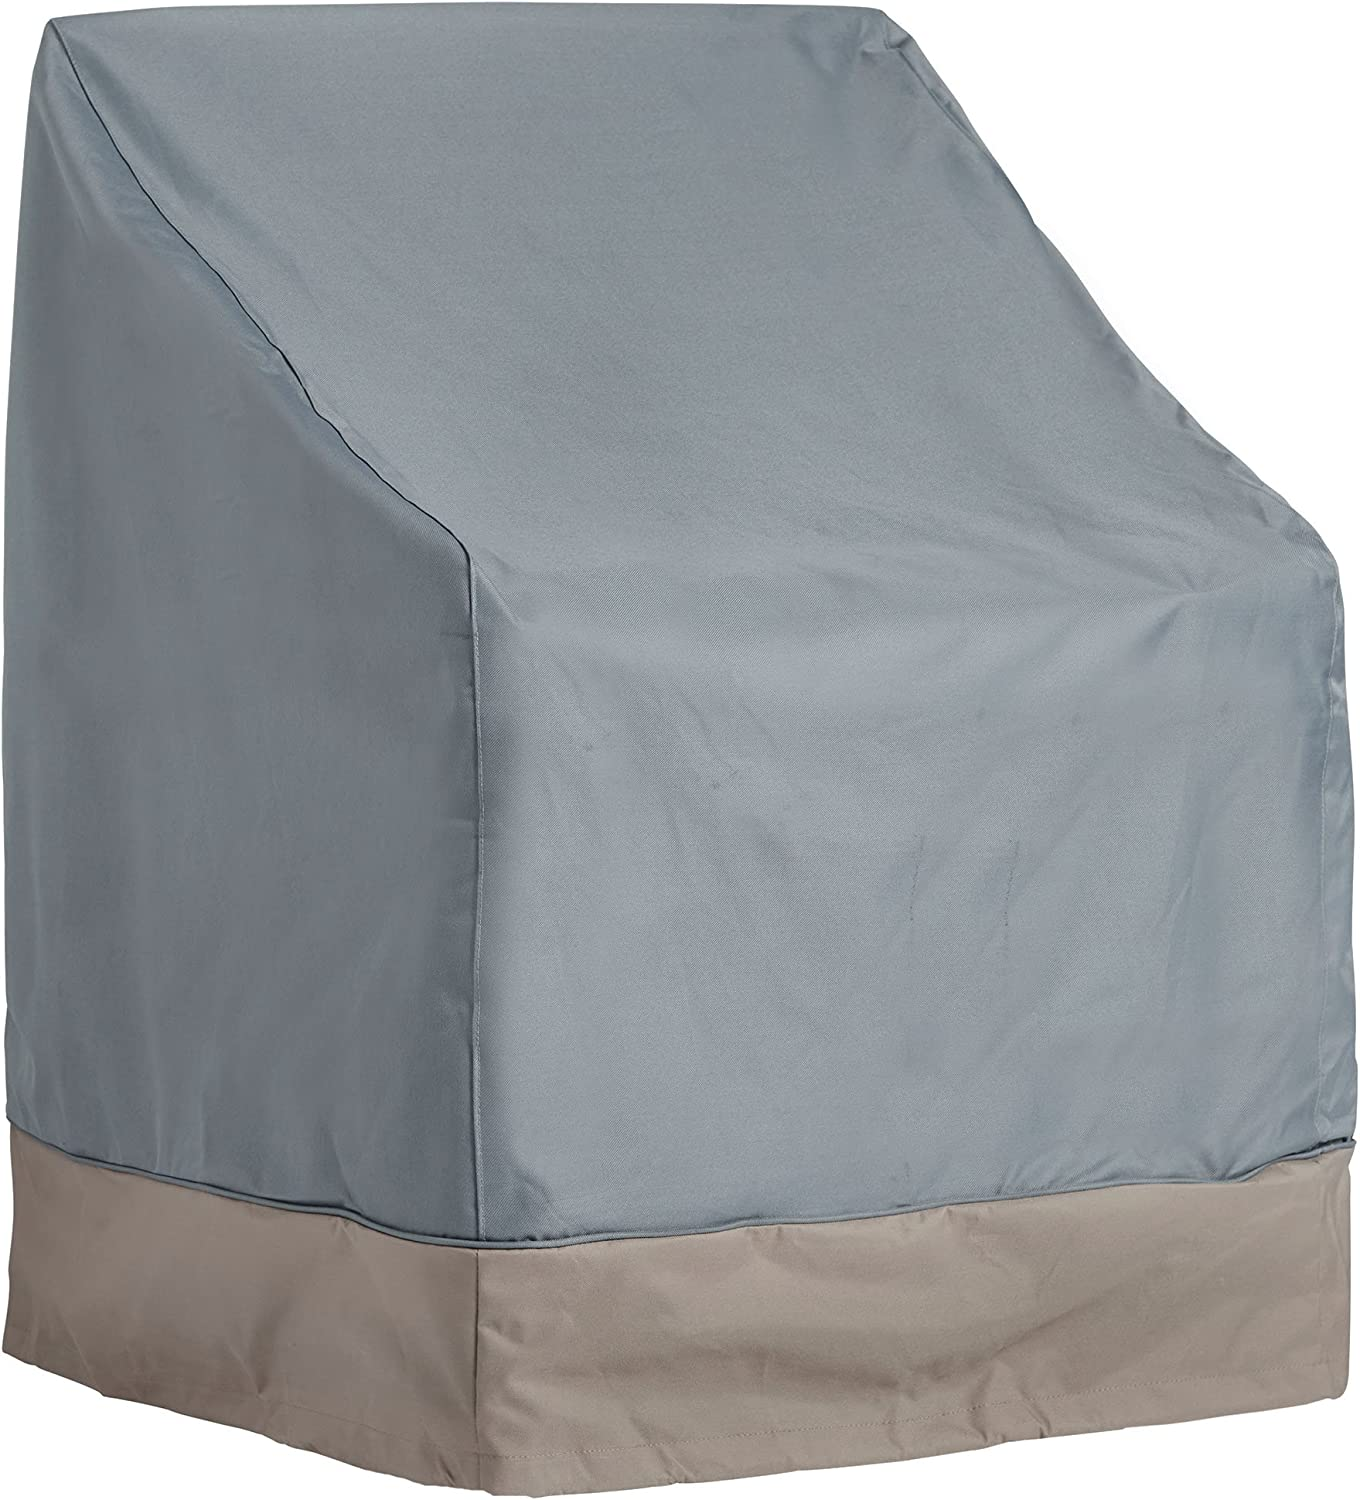 VonHaus Single Patio Chair Cover – The Storm Collection Premium Heavy Duty Waterproof Outdoor Furniture Protection – Slate Grey with Beige Trim – L29.5 x W27.5 x H25-40 inches